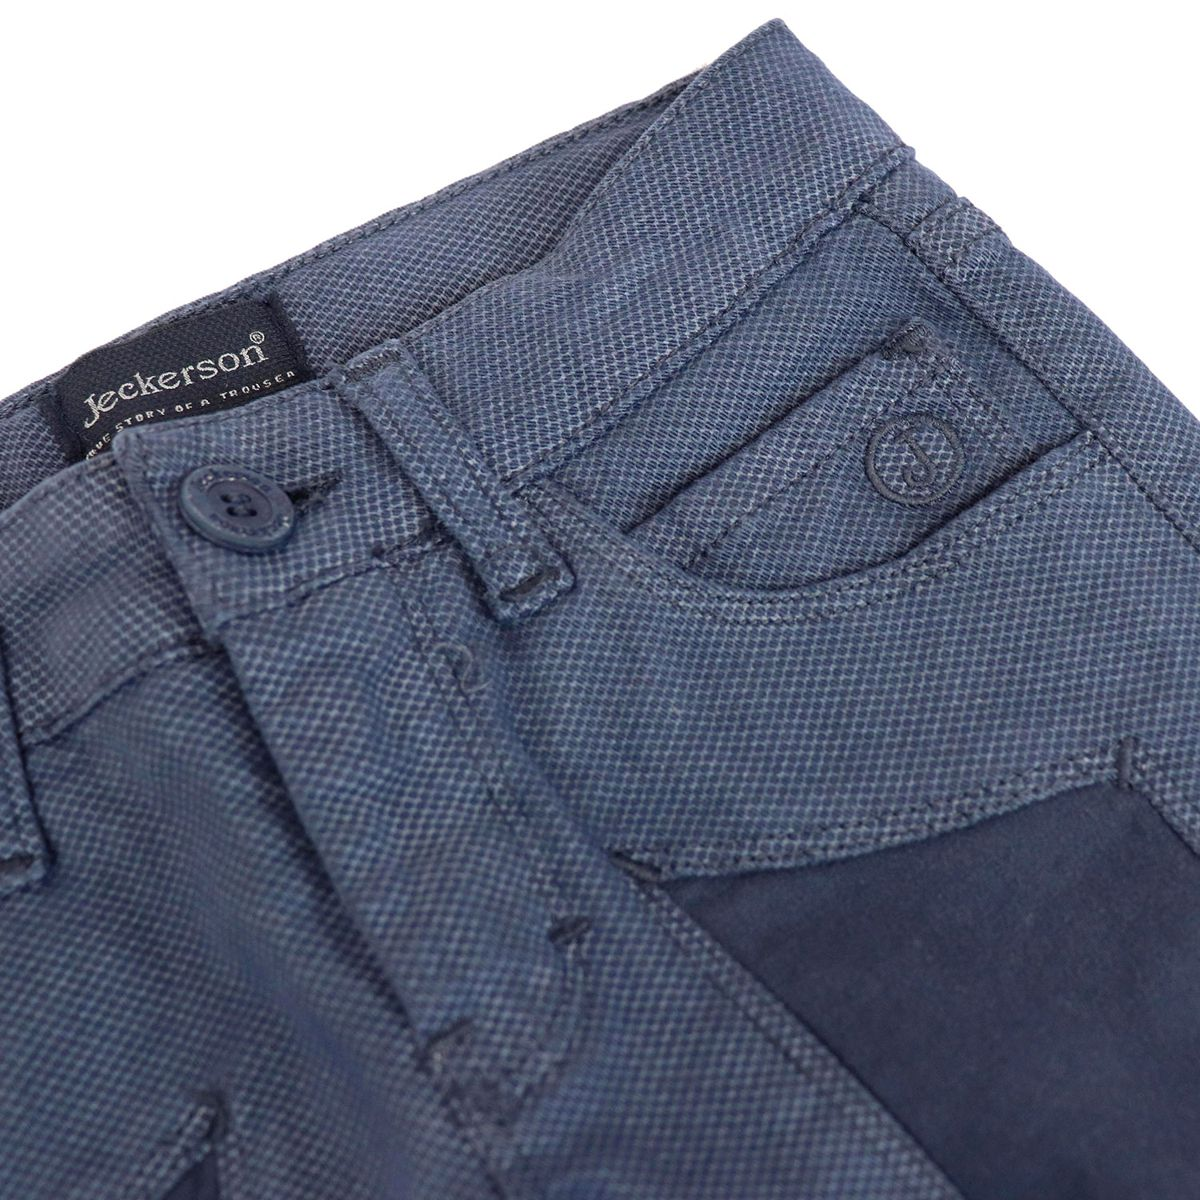 Micro patterned trousers with contrasting patches Blue Jeckerson